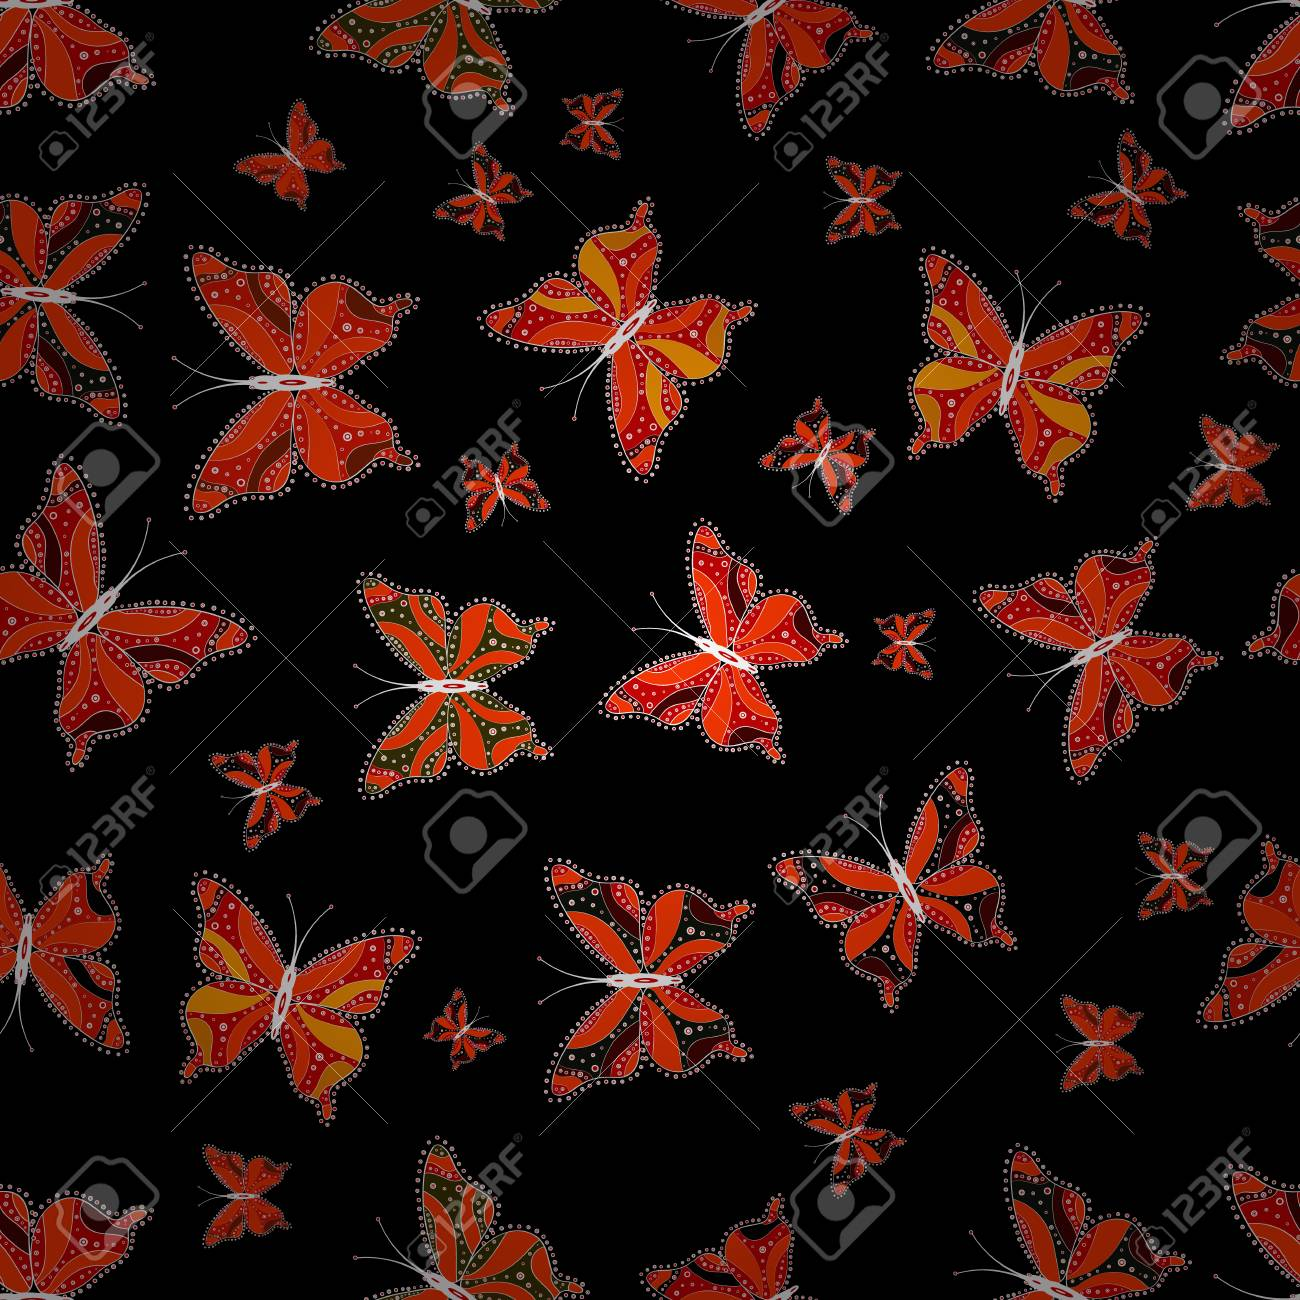 Butterfly On Black Orange And Red Background Random Black Royalty Free Cliparts Vectors And Stock Illustration Image 126819460